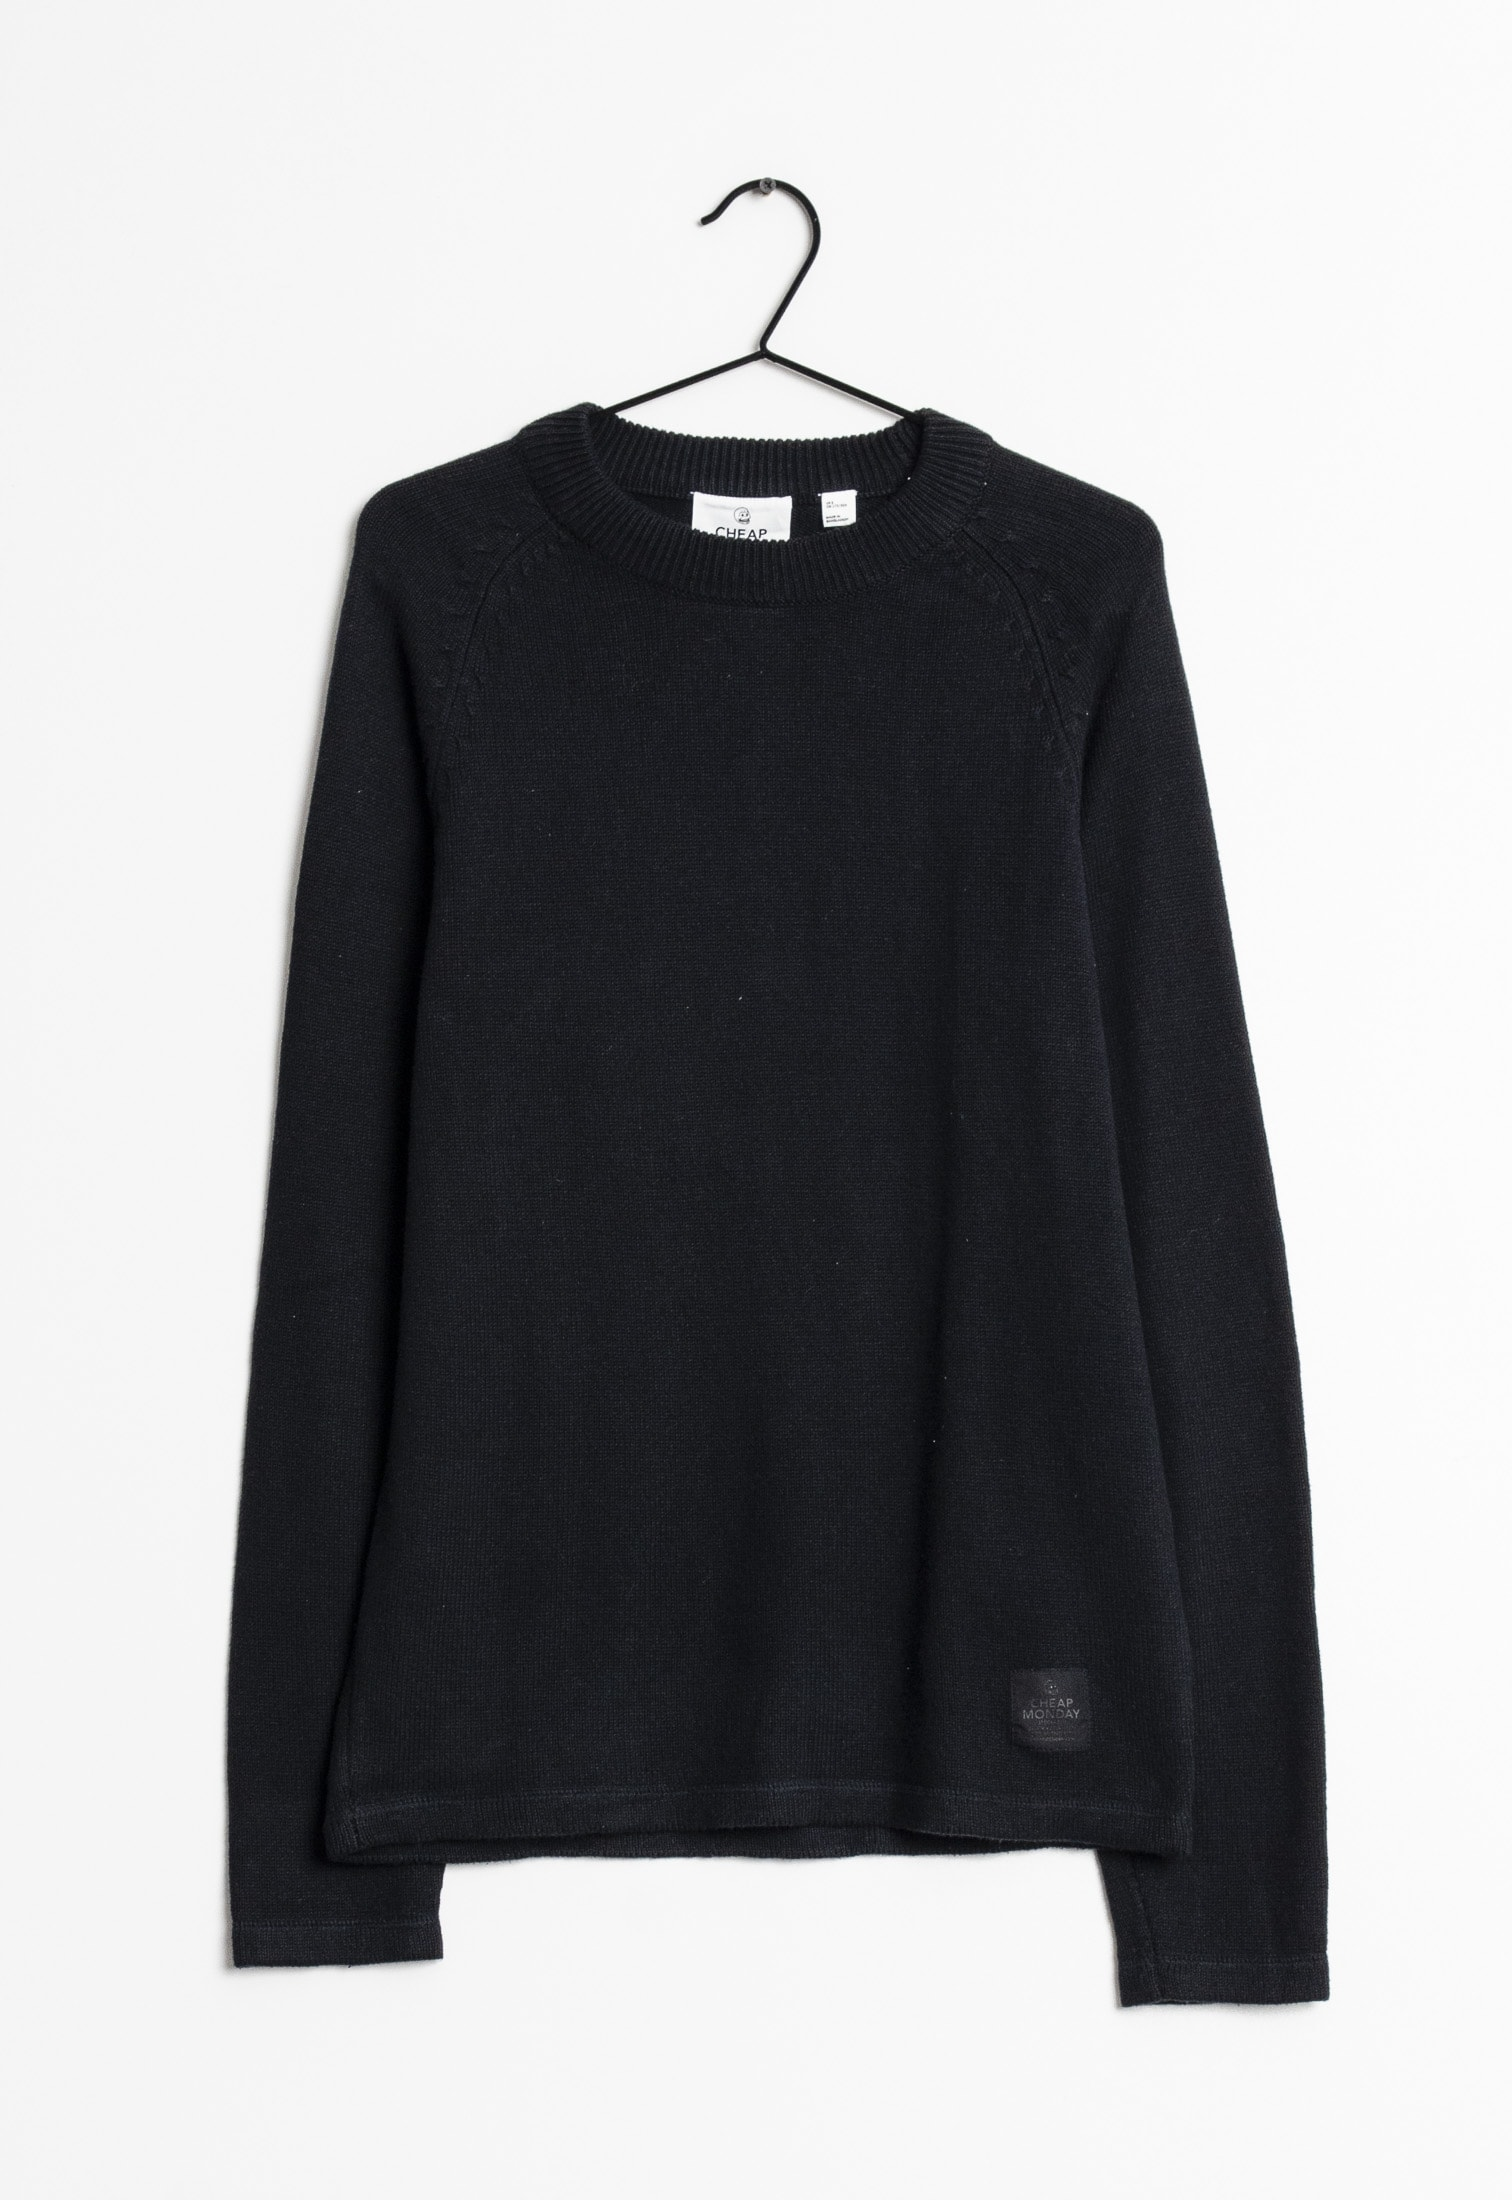 Cheap Monday Strickpullover Schwarz Gr.S